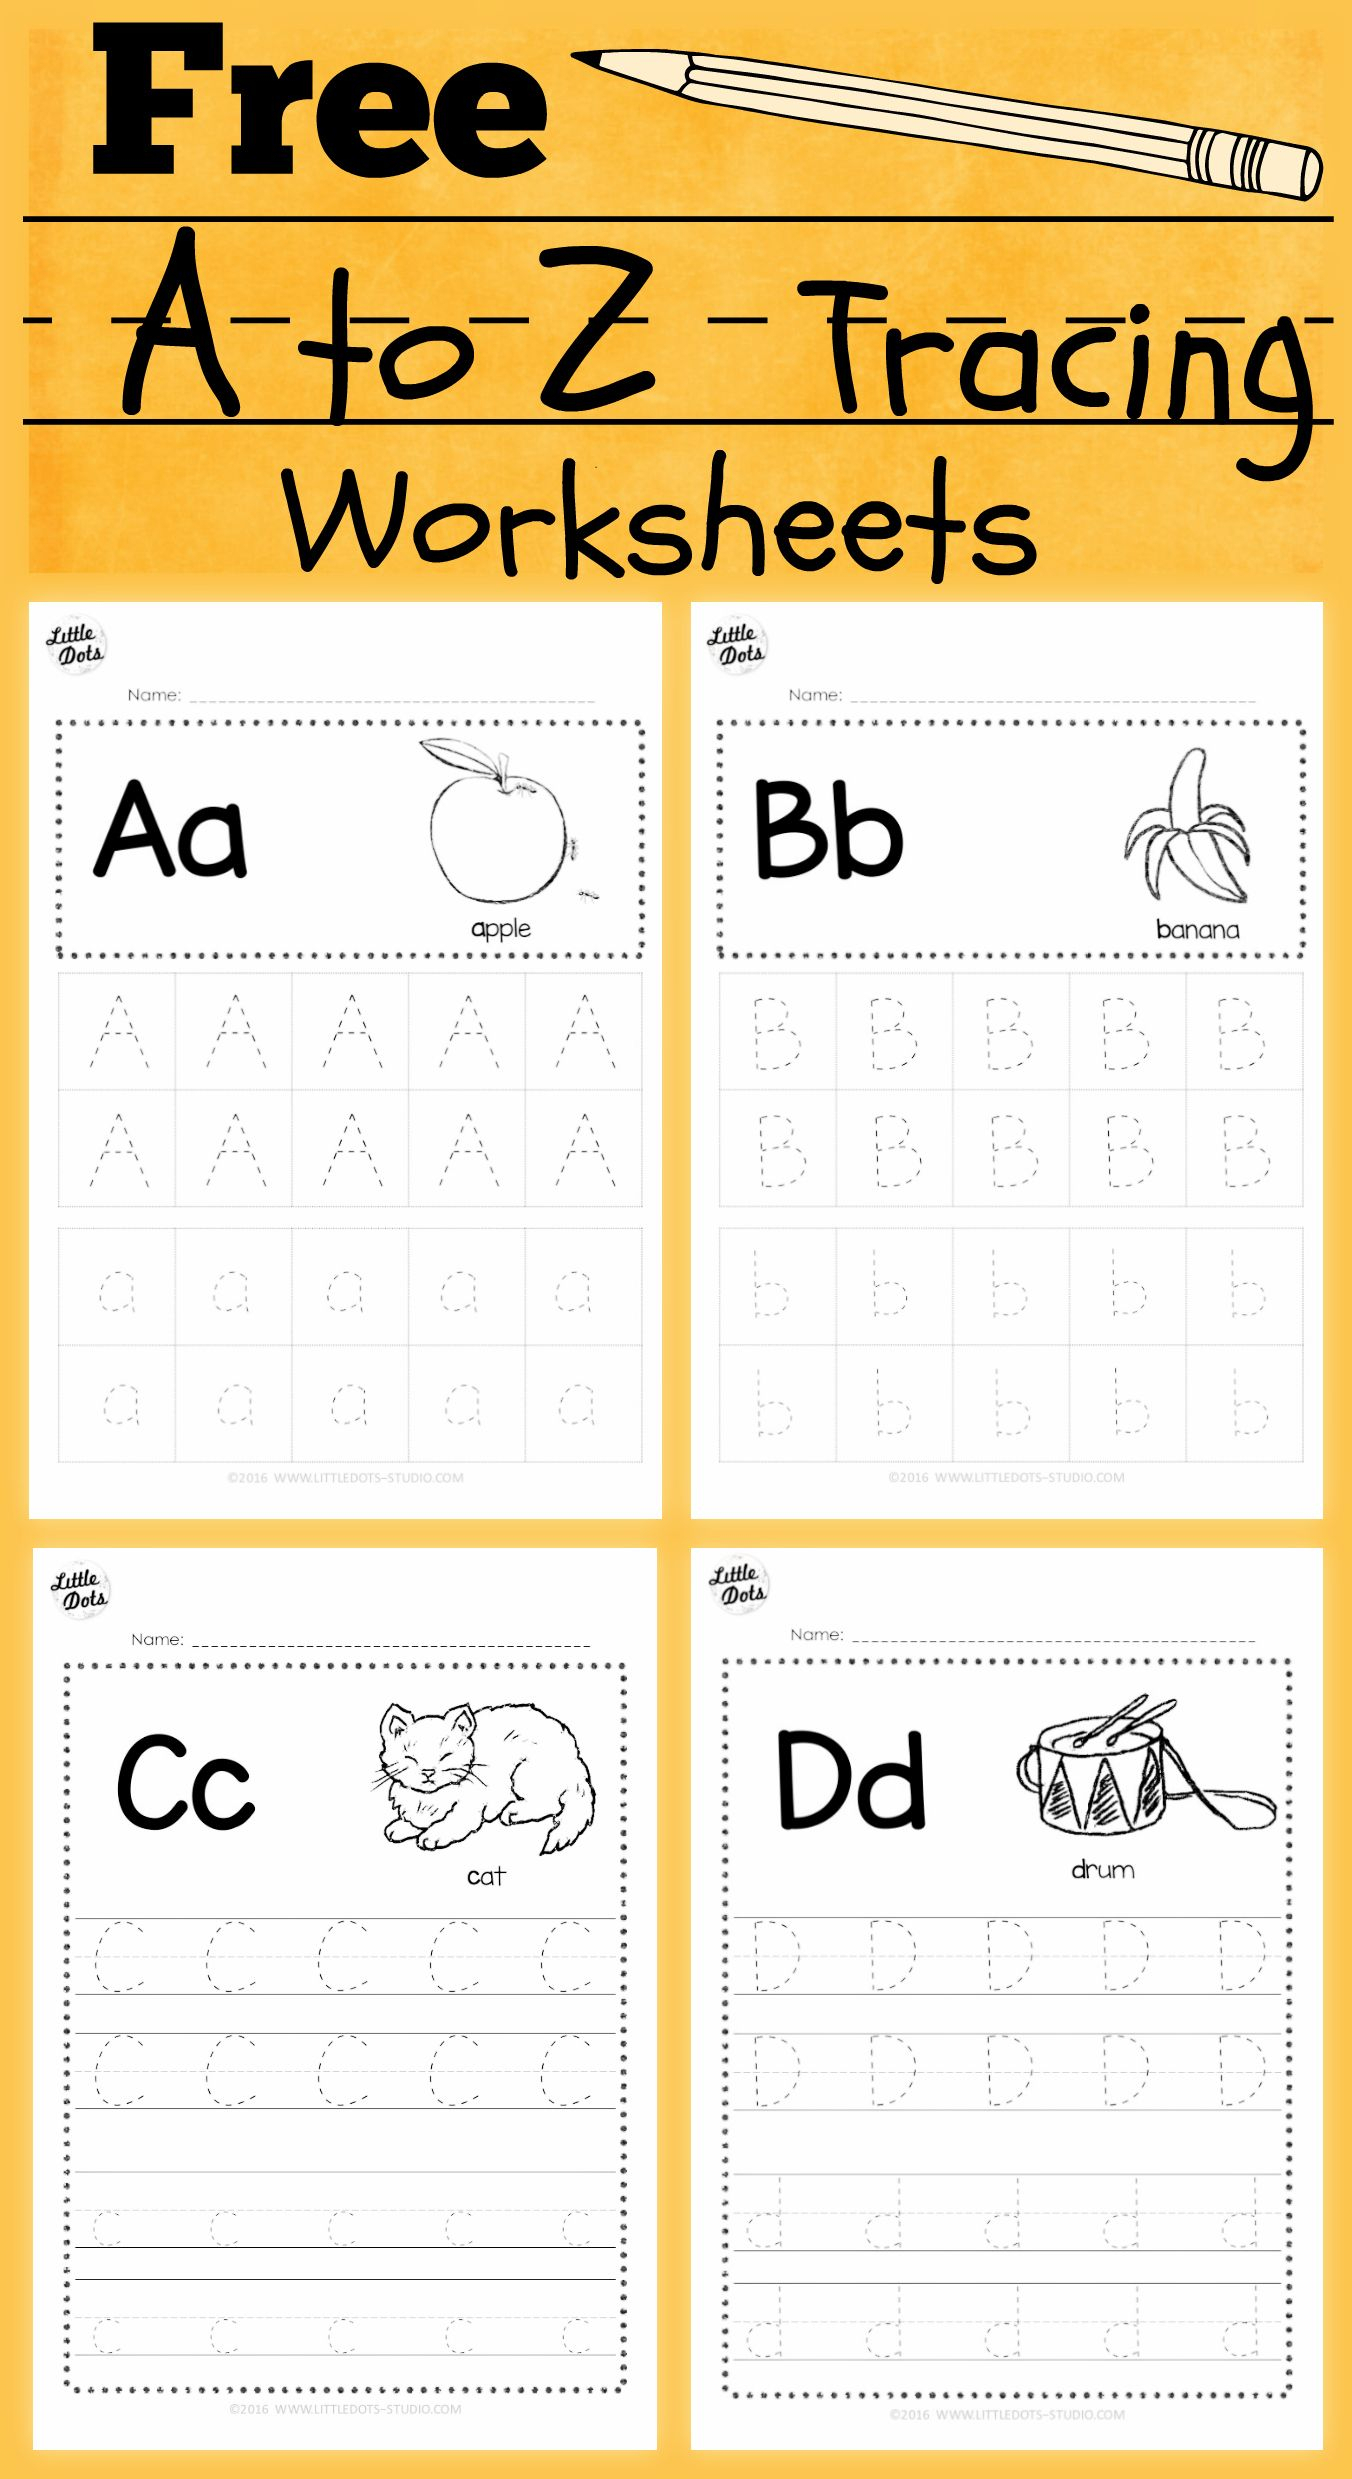 Download Free Alphabet Tracing Worksheets For Letter A To Z in Tracing Letters Worksheets Make Your Own